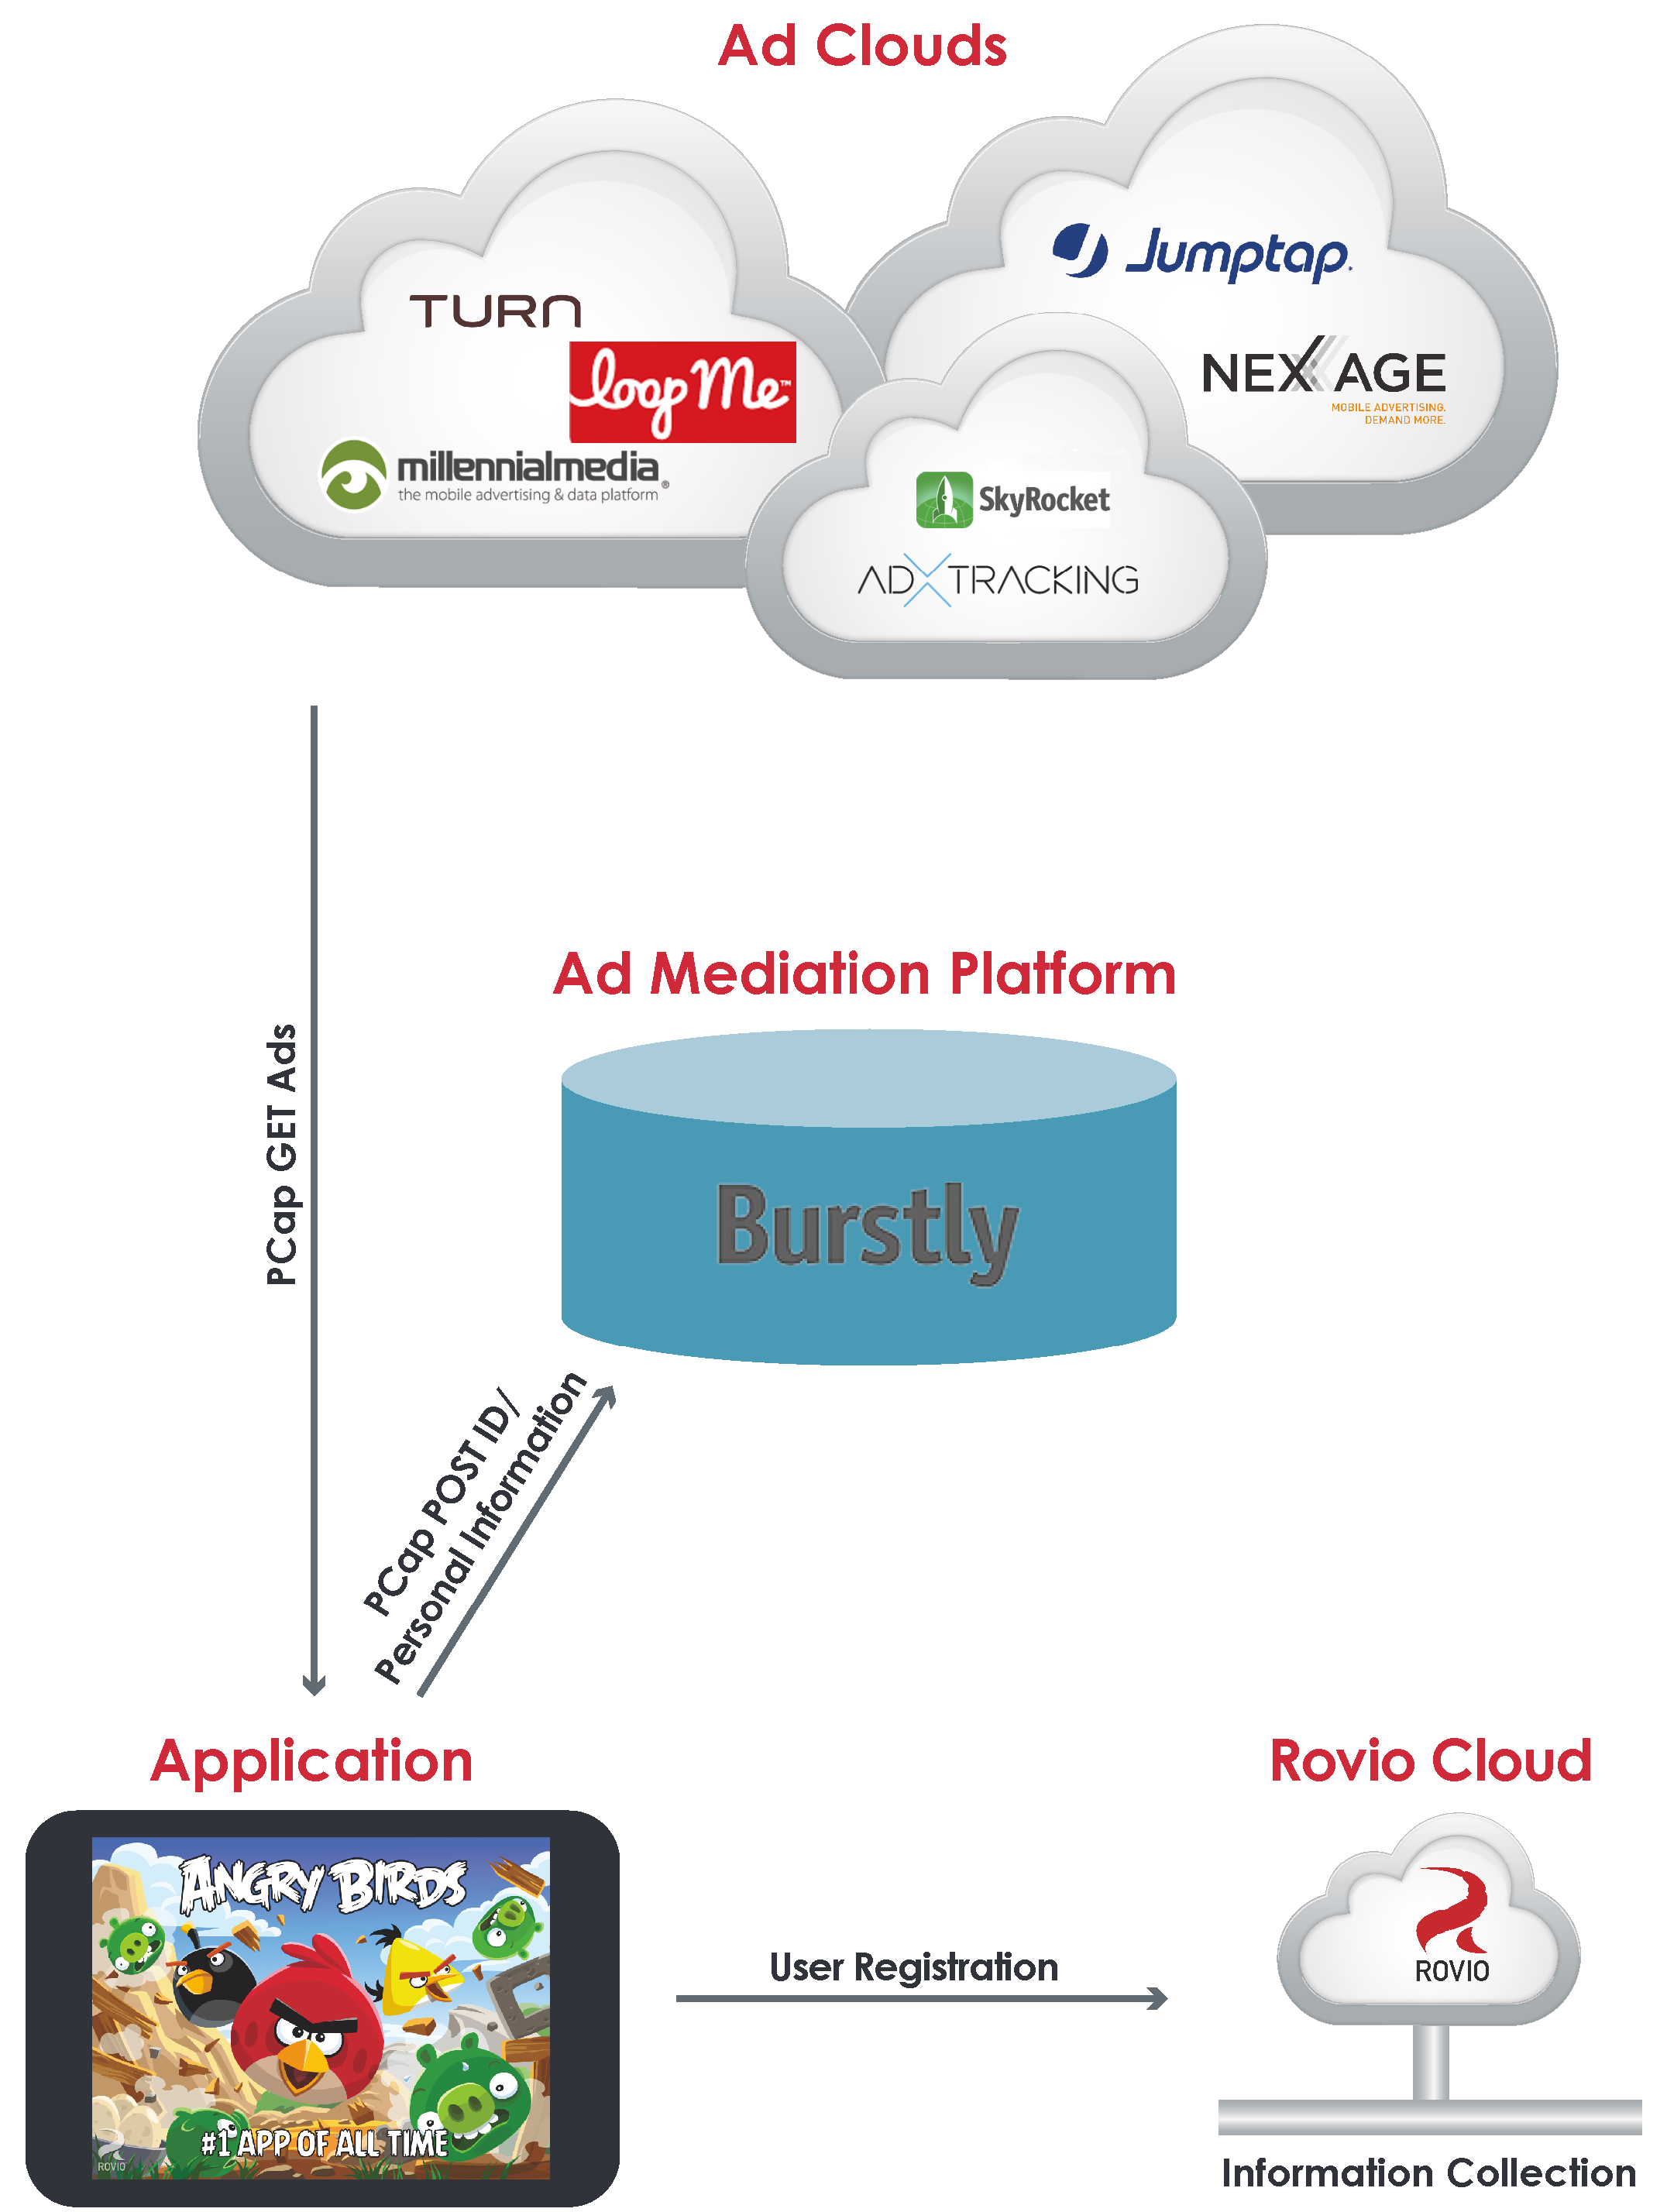 Figure 5. Information flow among Angry Birds, the ad intermediate platform and the ad cloud.